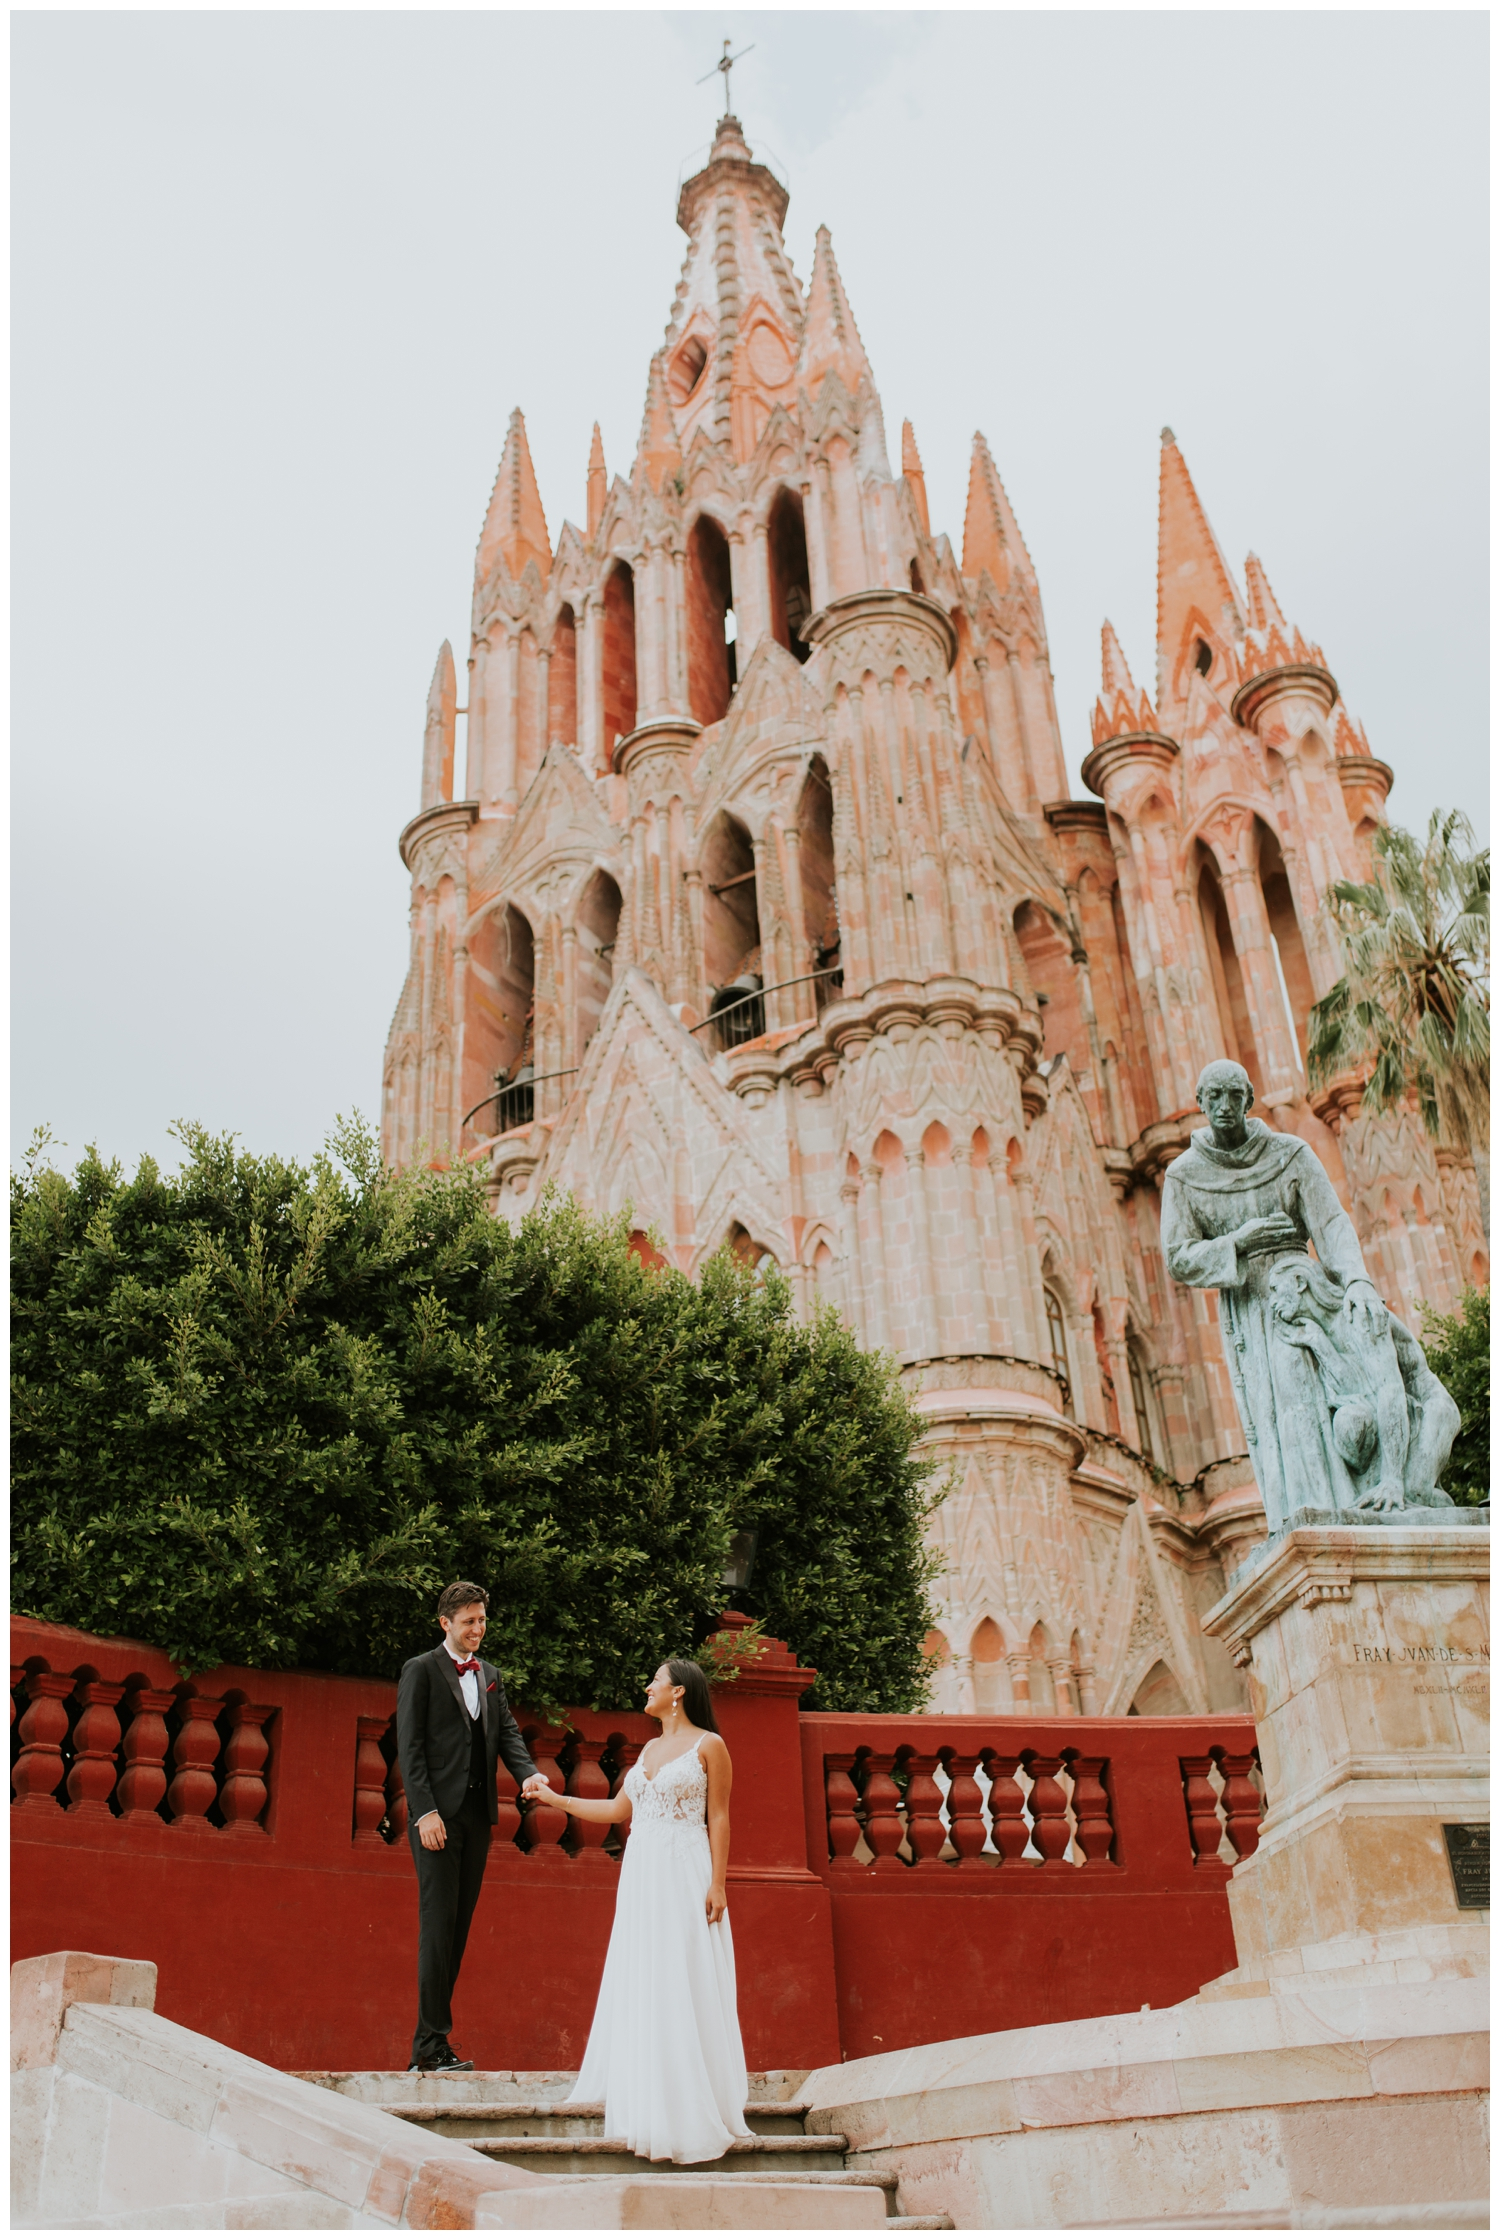 Shane+Sofia, San Miguel de Allende Wedding, Mexico Wedding, Contista Productions Wedding Photography_0222.jpg